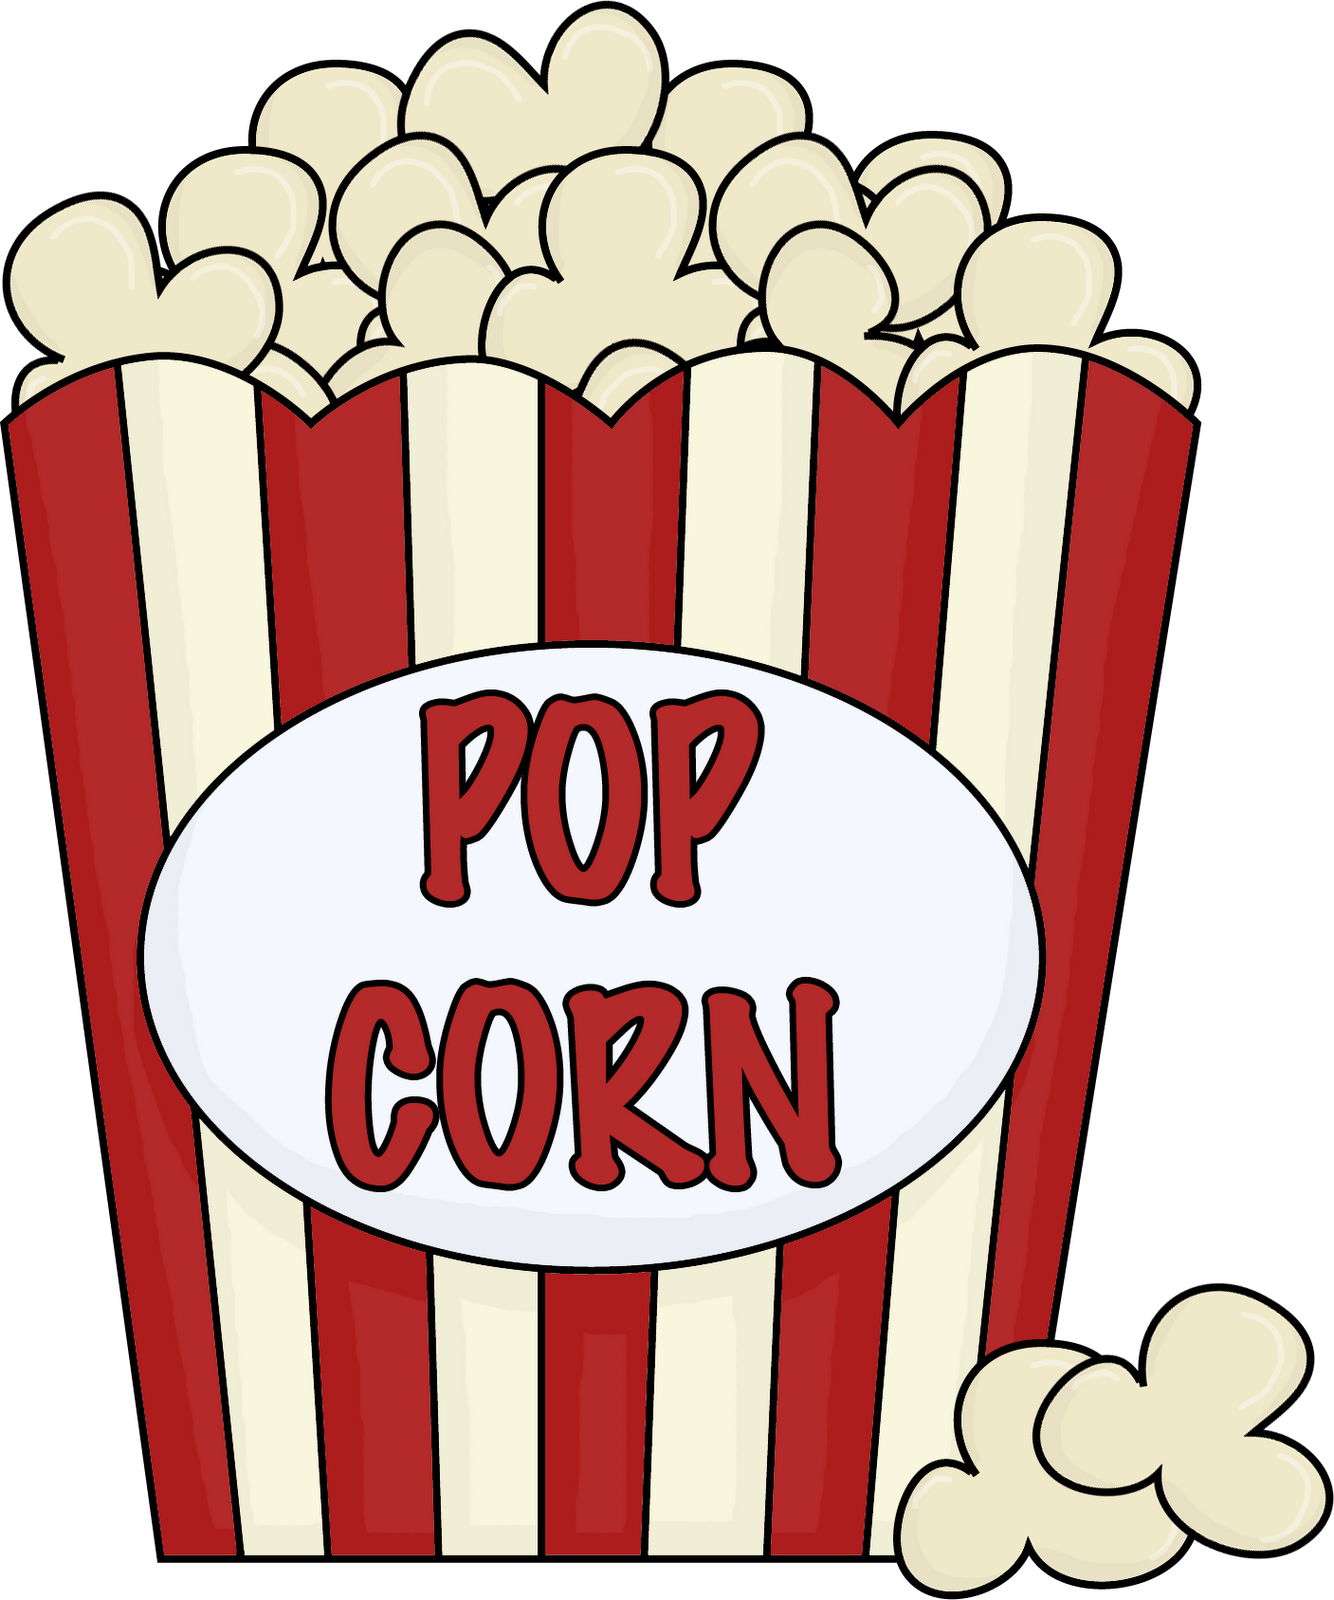 Red white popcorn boxes party invite clipart png. Clip art to glue